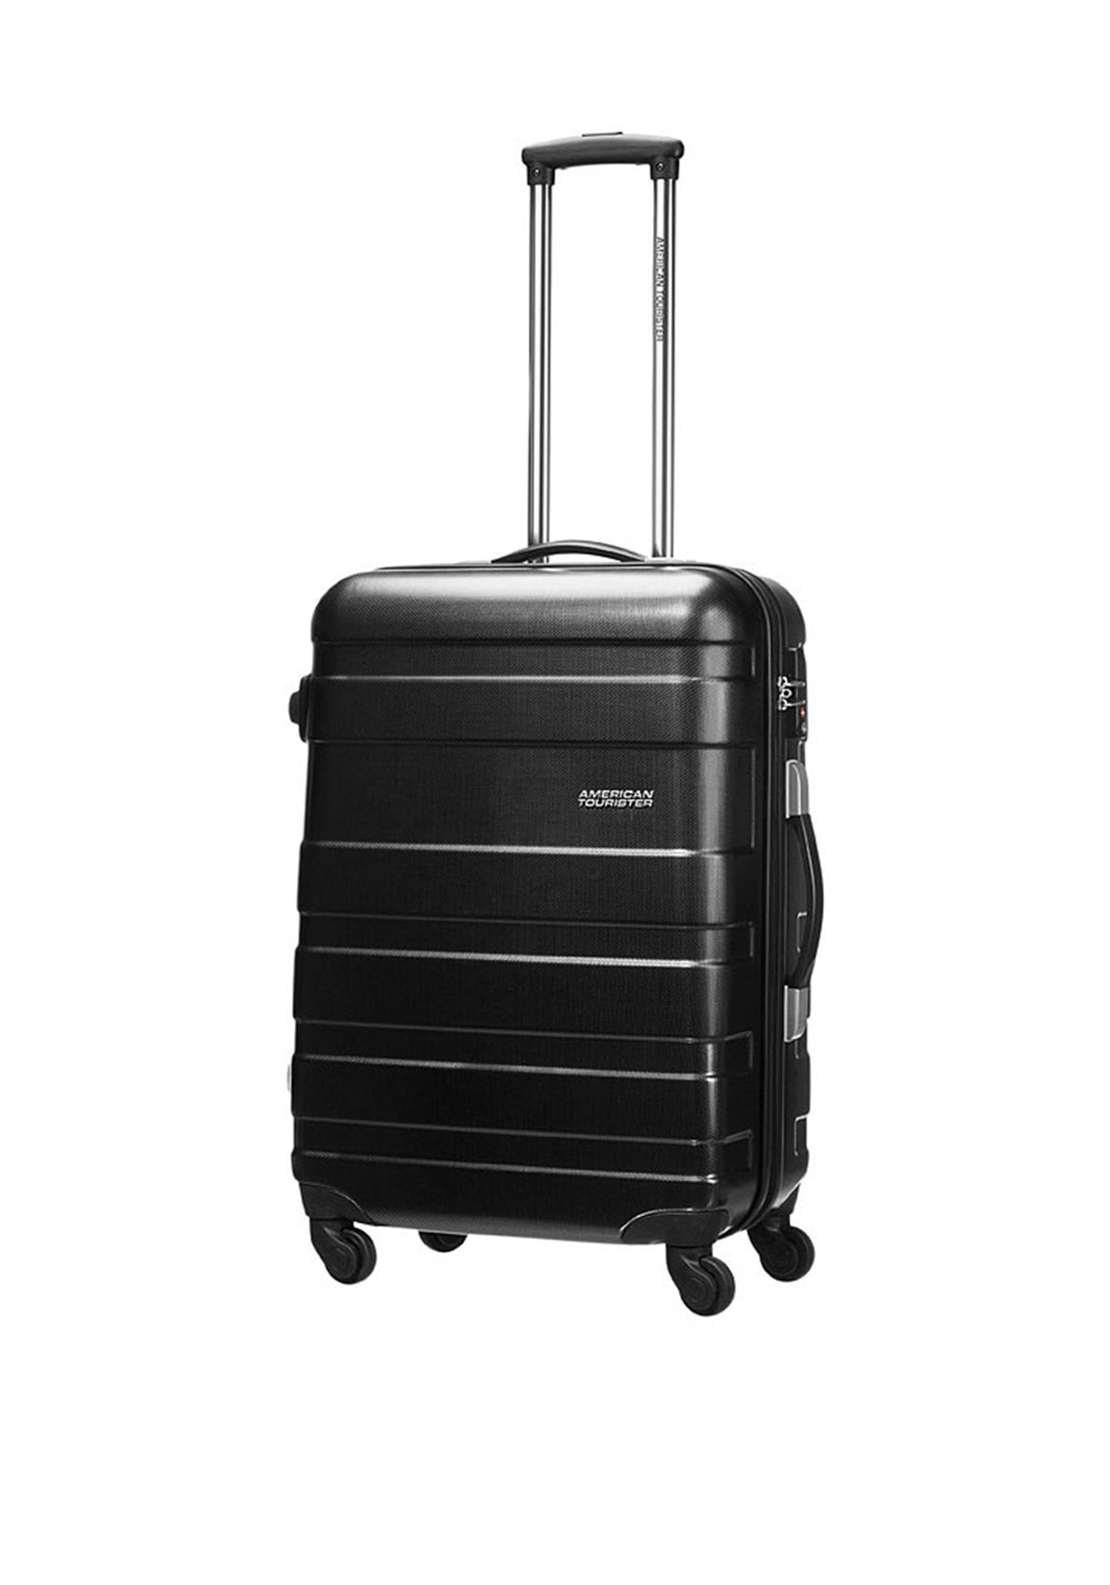 American Tourister Pasadena Spinner Medium 67cm Suitcase, Black and Gold